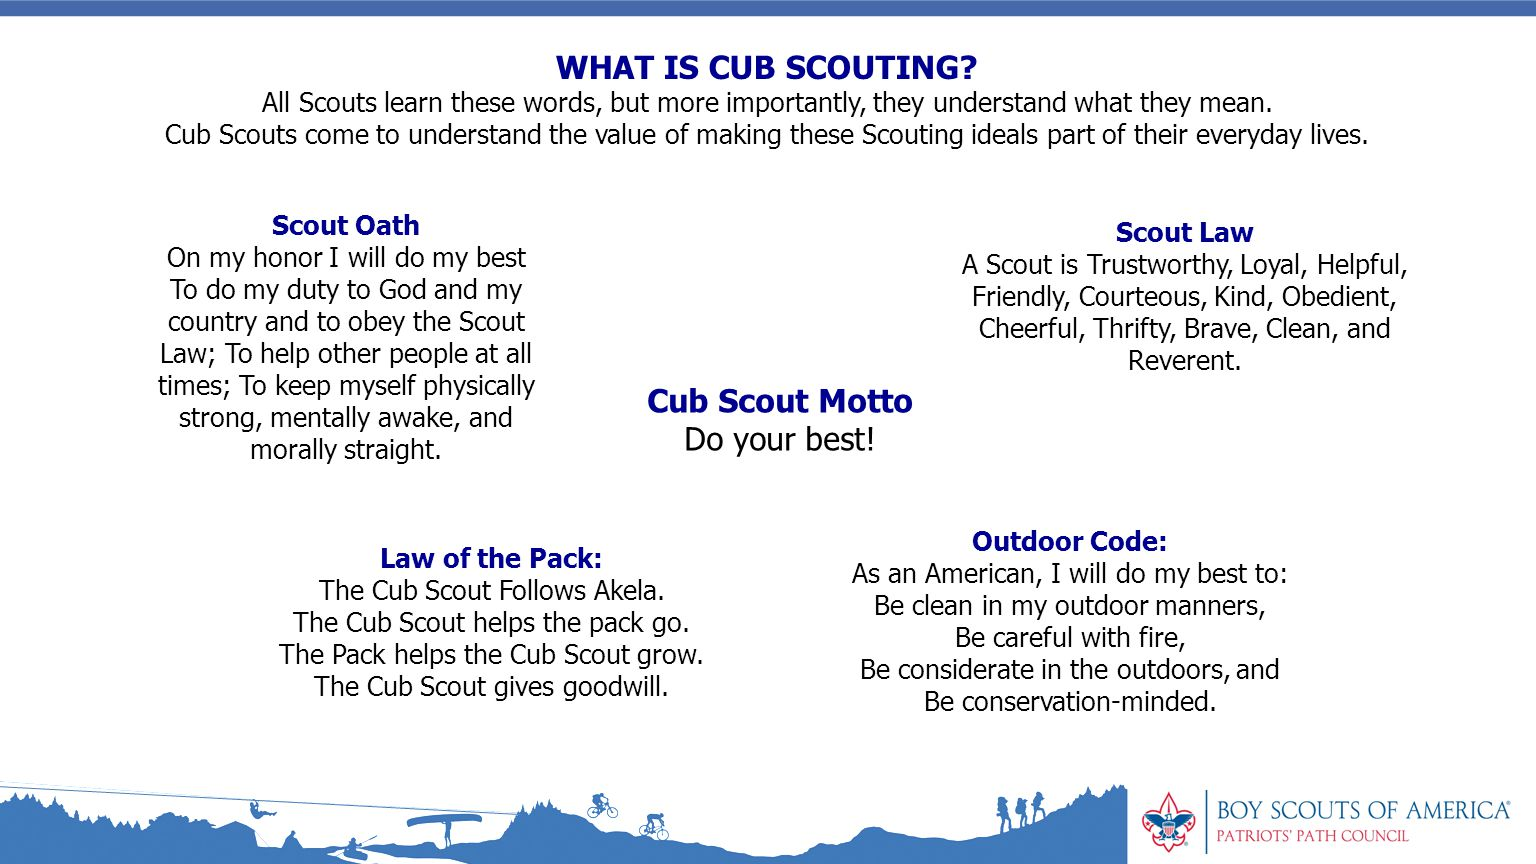 photo relating to Boy Scout Law Printable identify out of doors code bsa -